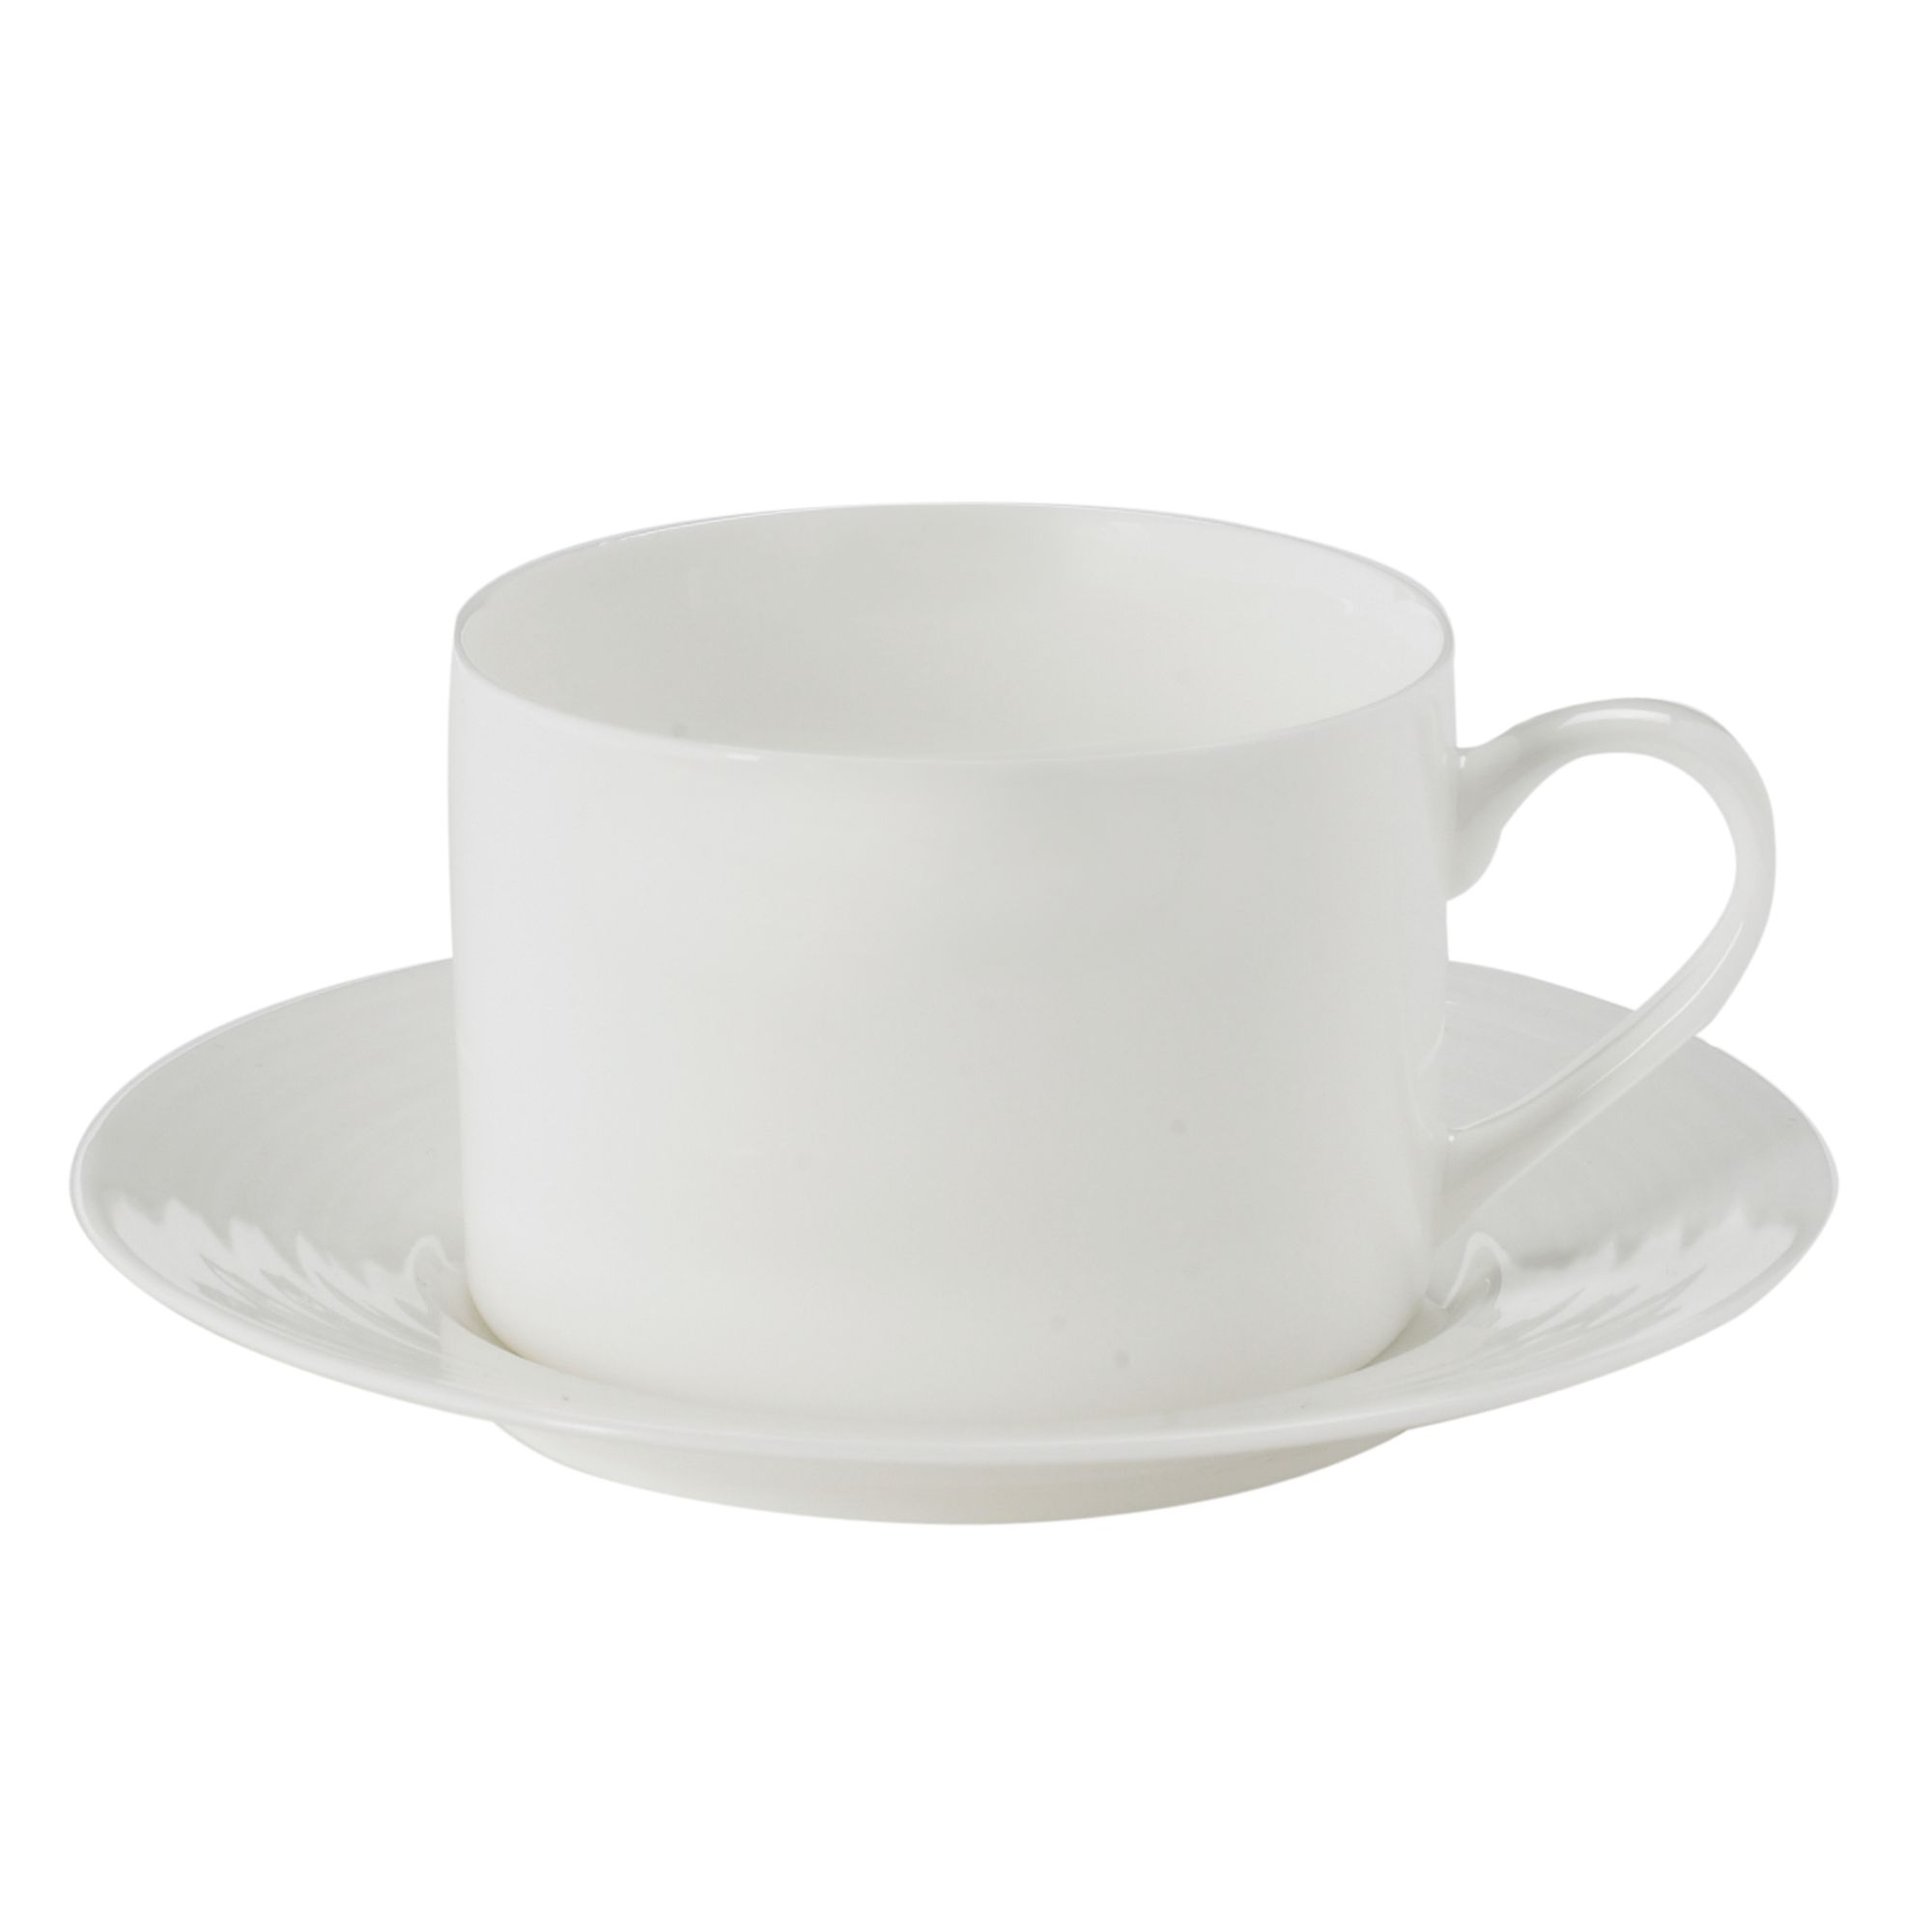 Soho Bone China Cup and Saucer